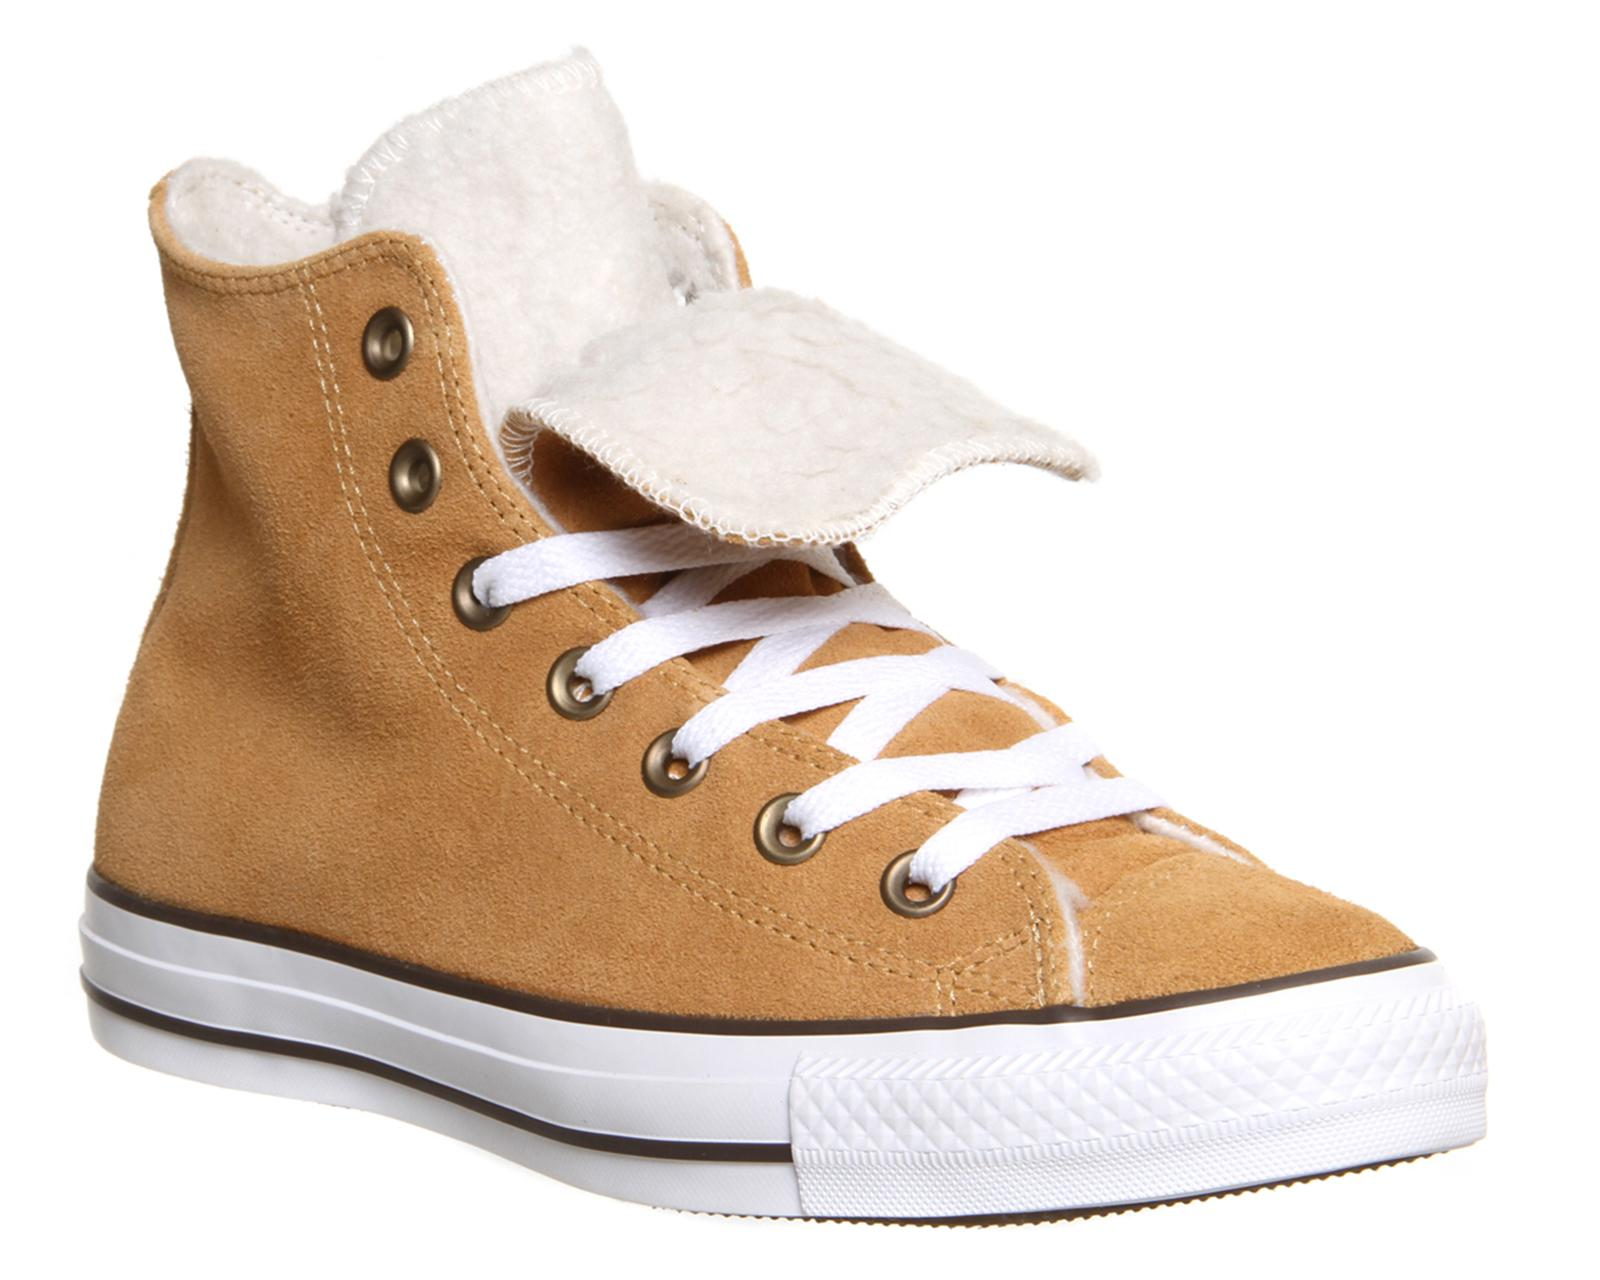 bc1d9e4dac29 Lyst - Converse All Star Hi Double Tongue in Natural for Men